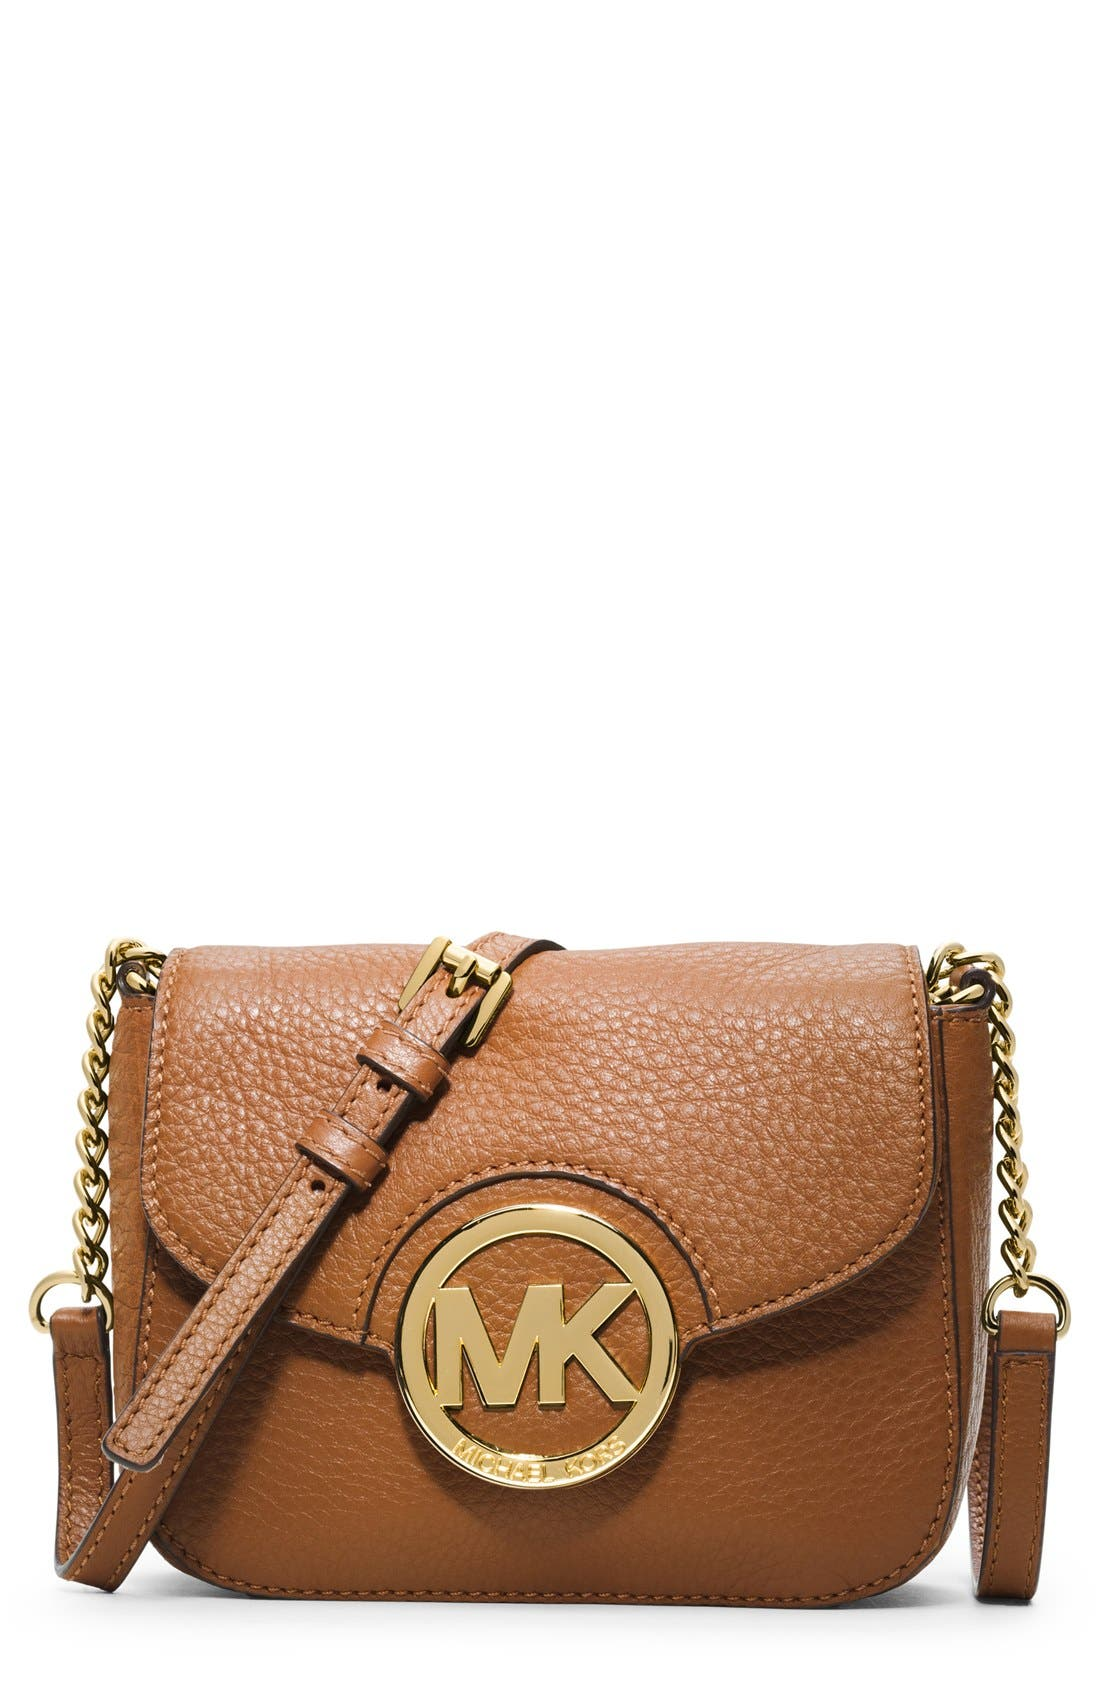 Alternate Image 1 Selected - MICHAEL Michael Kors 'Small Fulton' Crossbody Bag